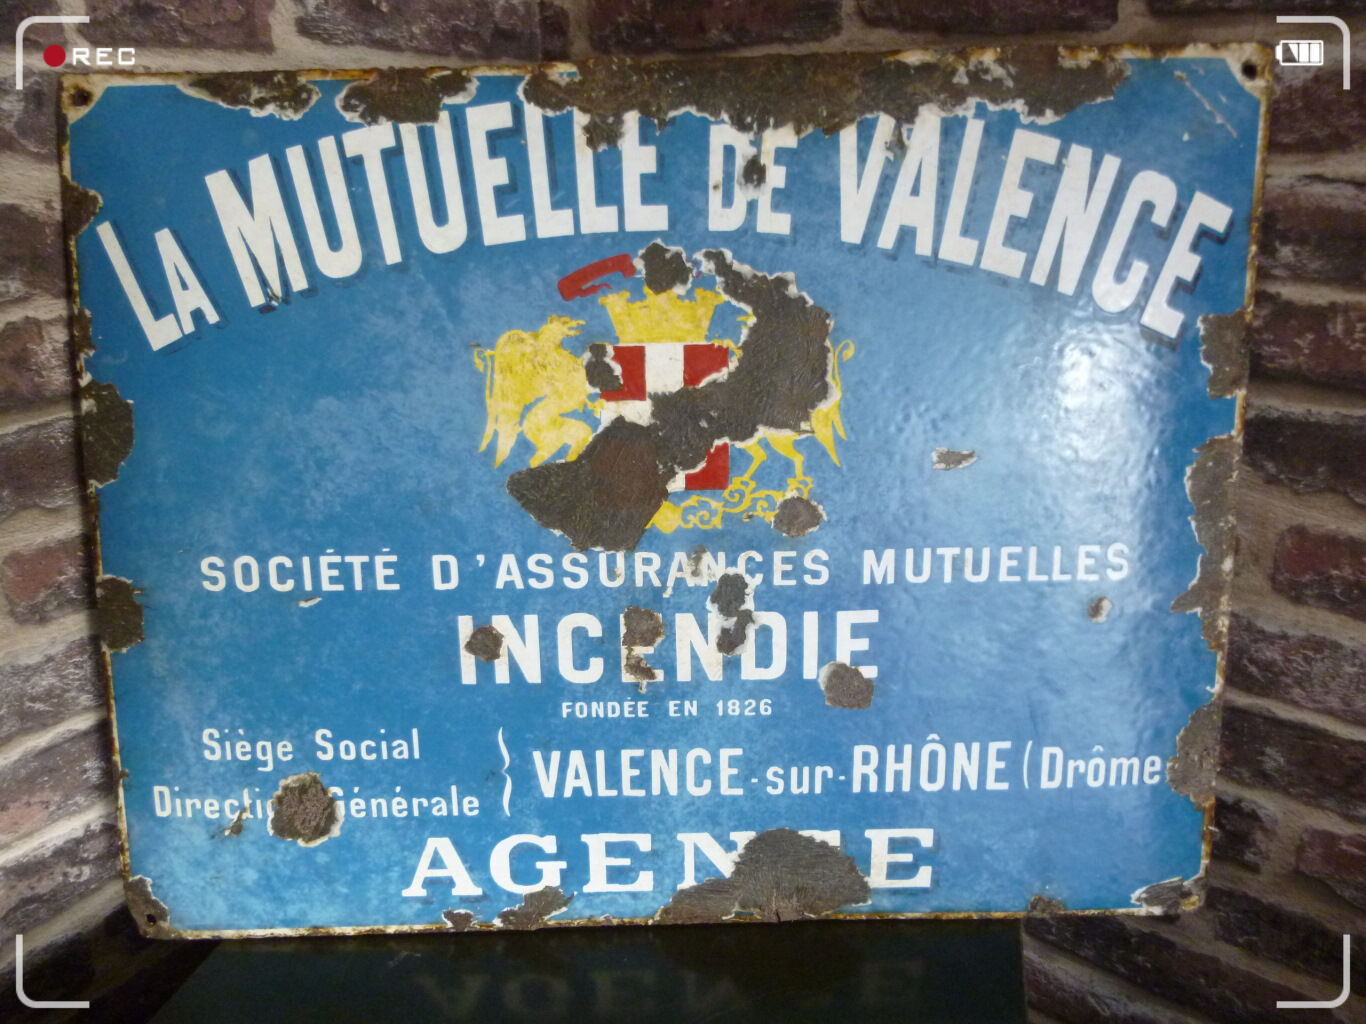 plaque publicitaire emaillee metal sign la mutuelle de valence fondee en 1826 sortir de l 39 auberge. Black Bedroom Furniture Sets. Home Design Ideas